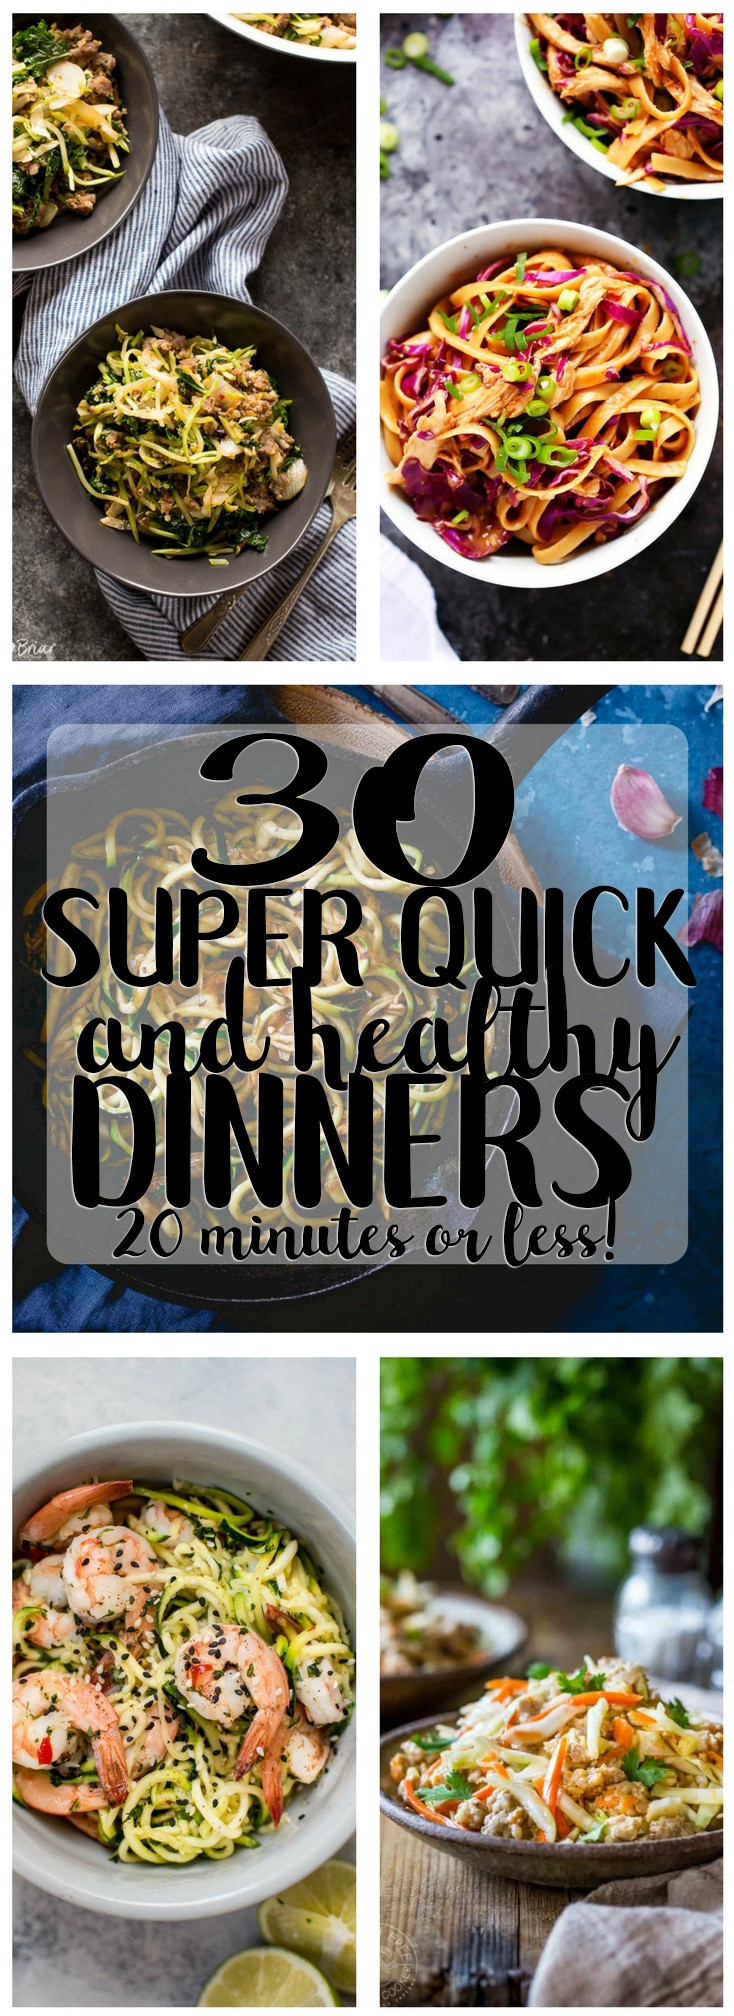 Super Healthy Dinners  30 Super Quick and Healthy Dinner Recipes 20 Minutes or